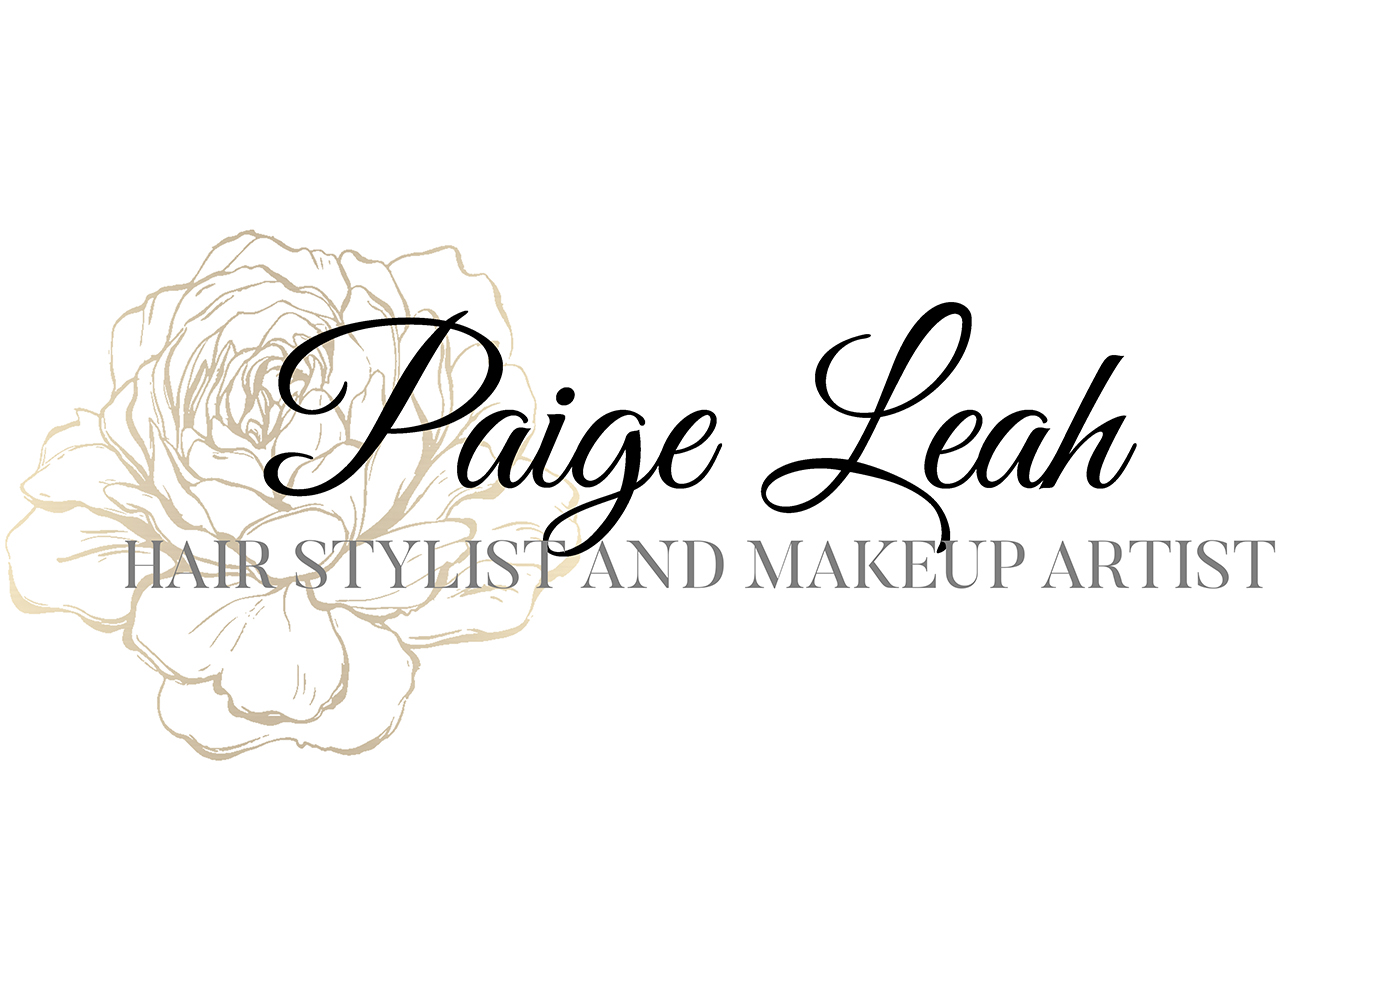 Paige Leah Logo Design by michaelw3105 for a Hair Stylist and Makeup Artist